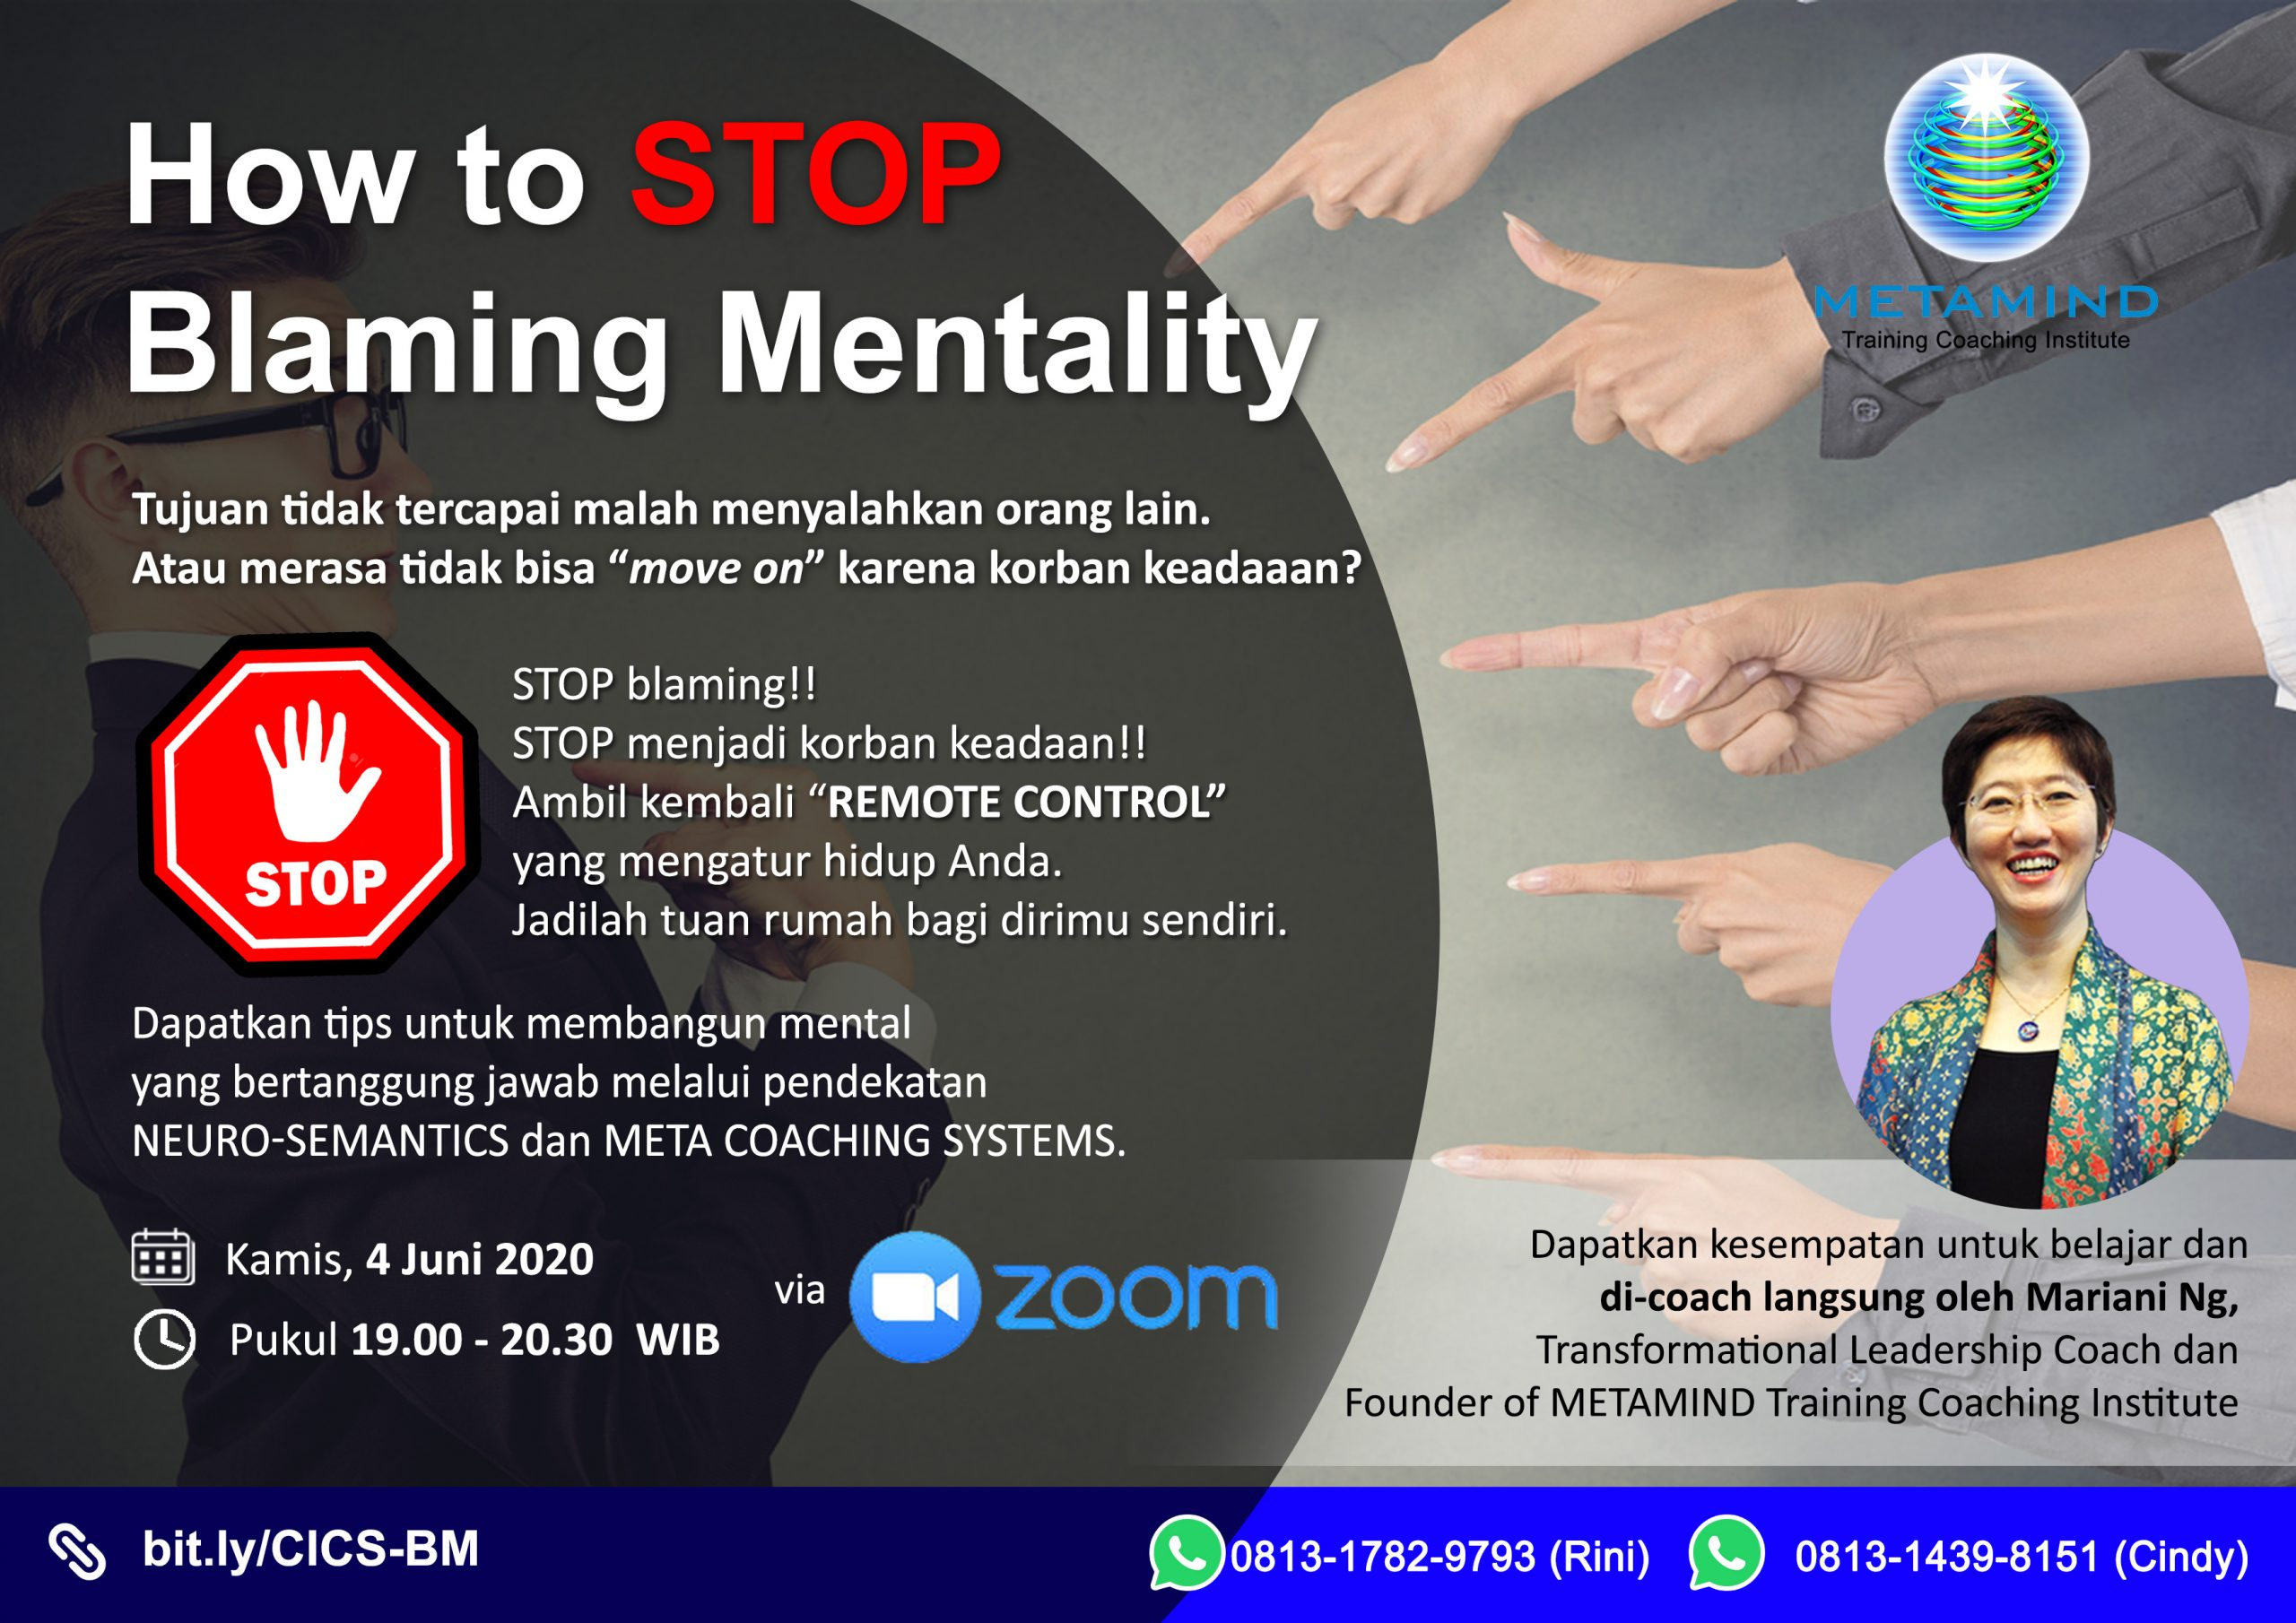 How to STOP Blaming Mentality